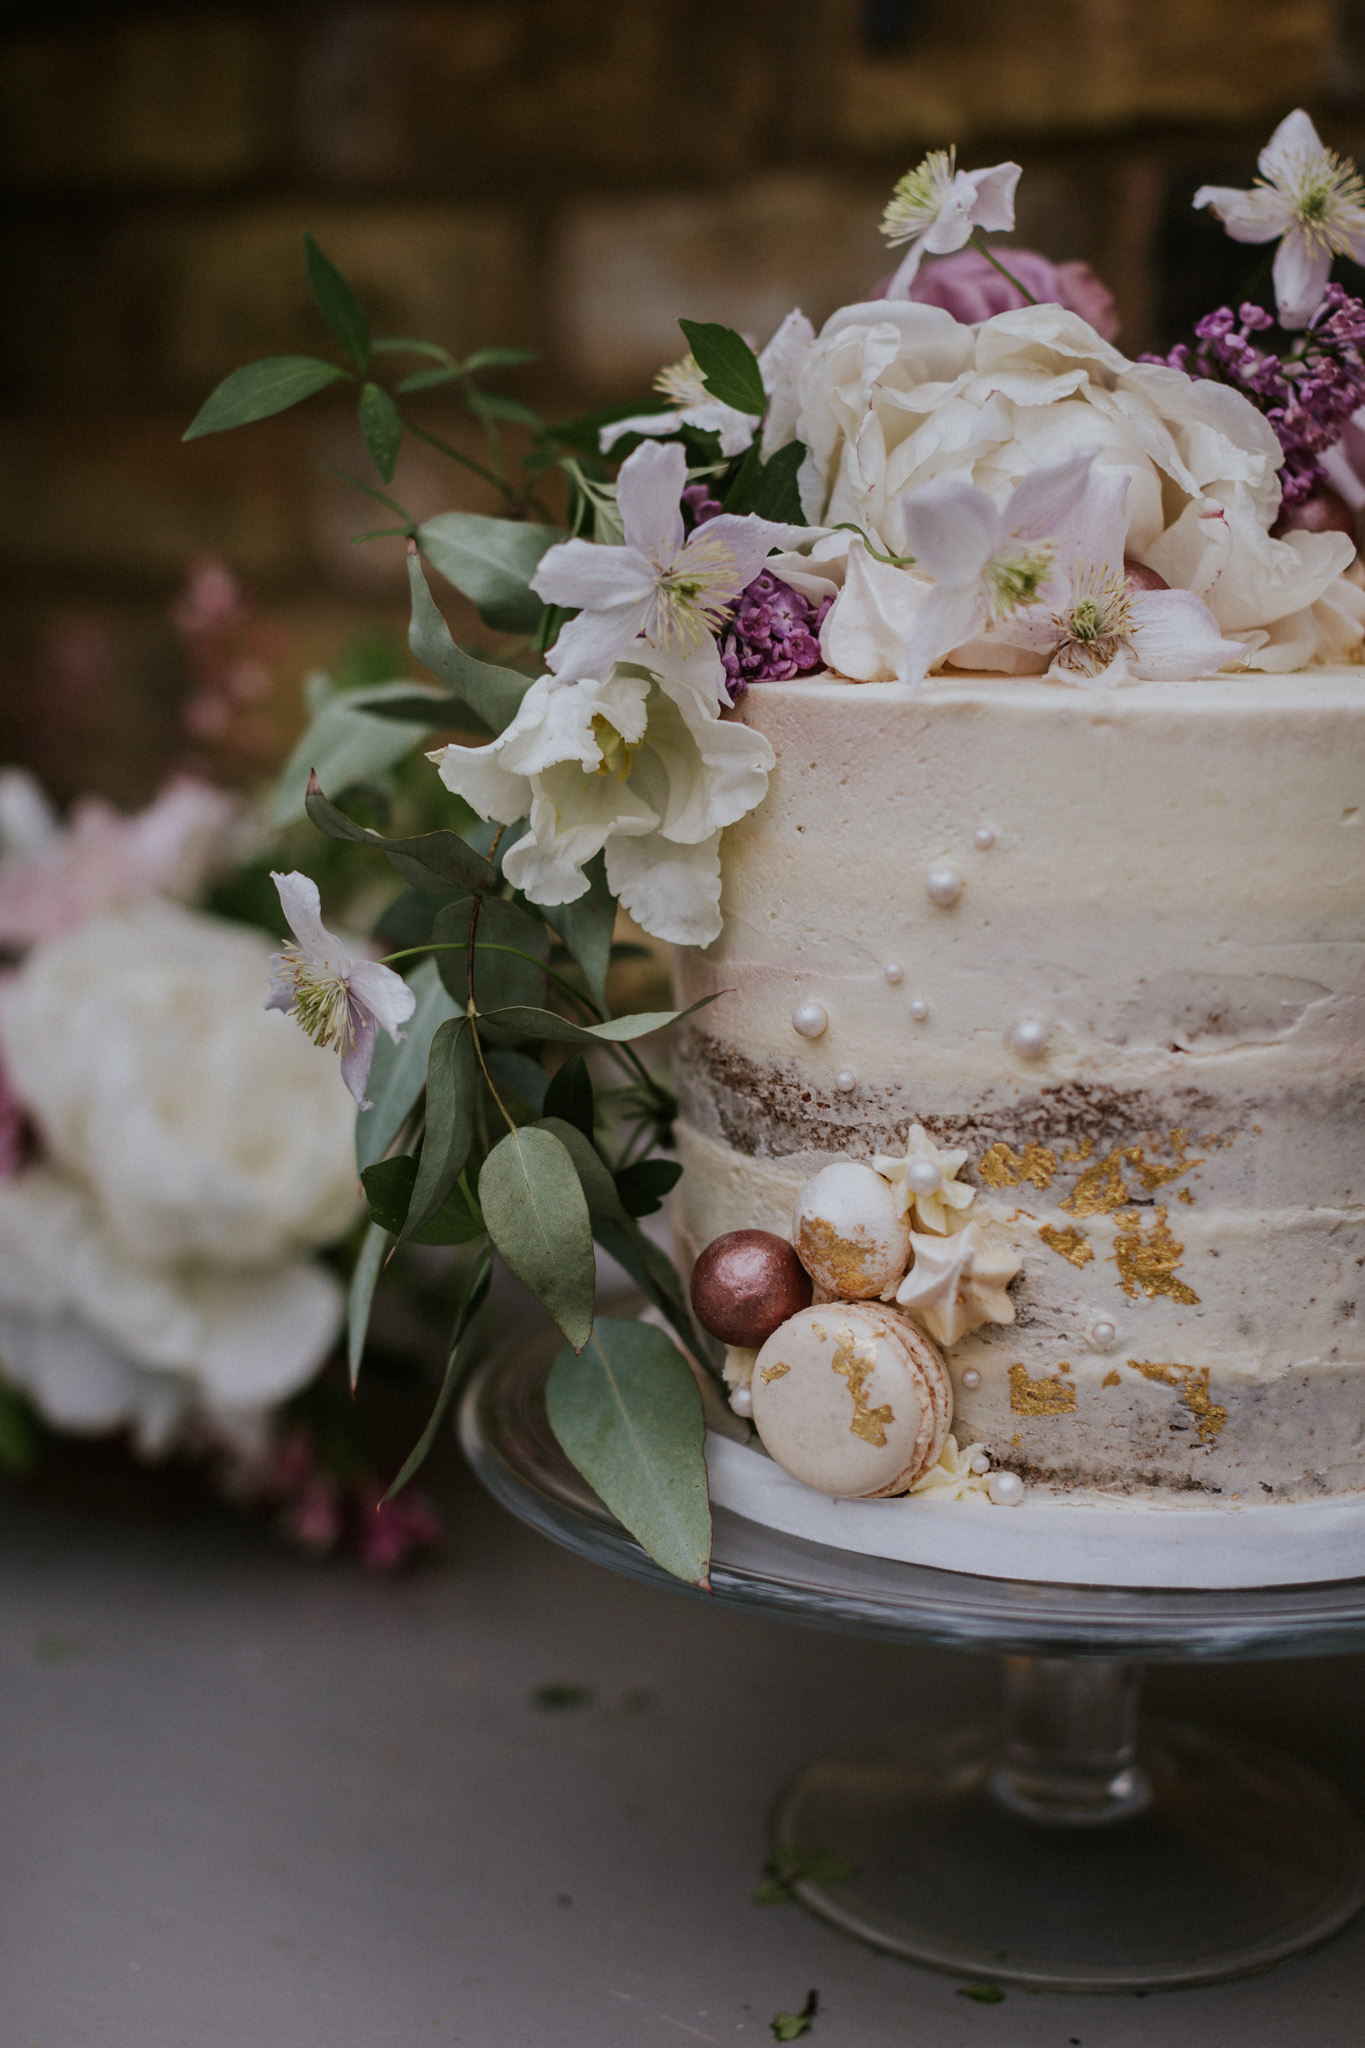 Utterly stunning romantic wedding cake details including speckles of gold leaf and edible pearls.